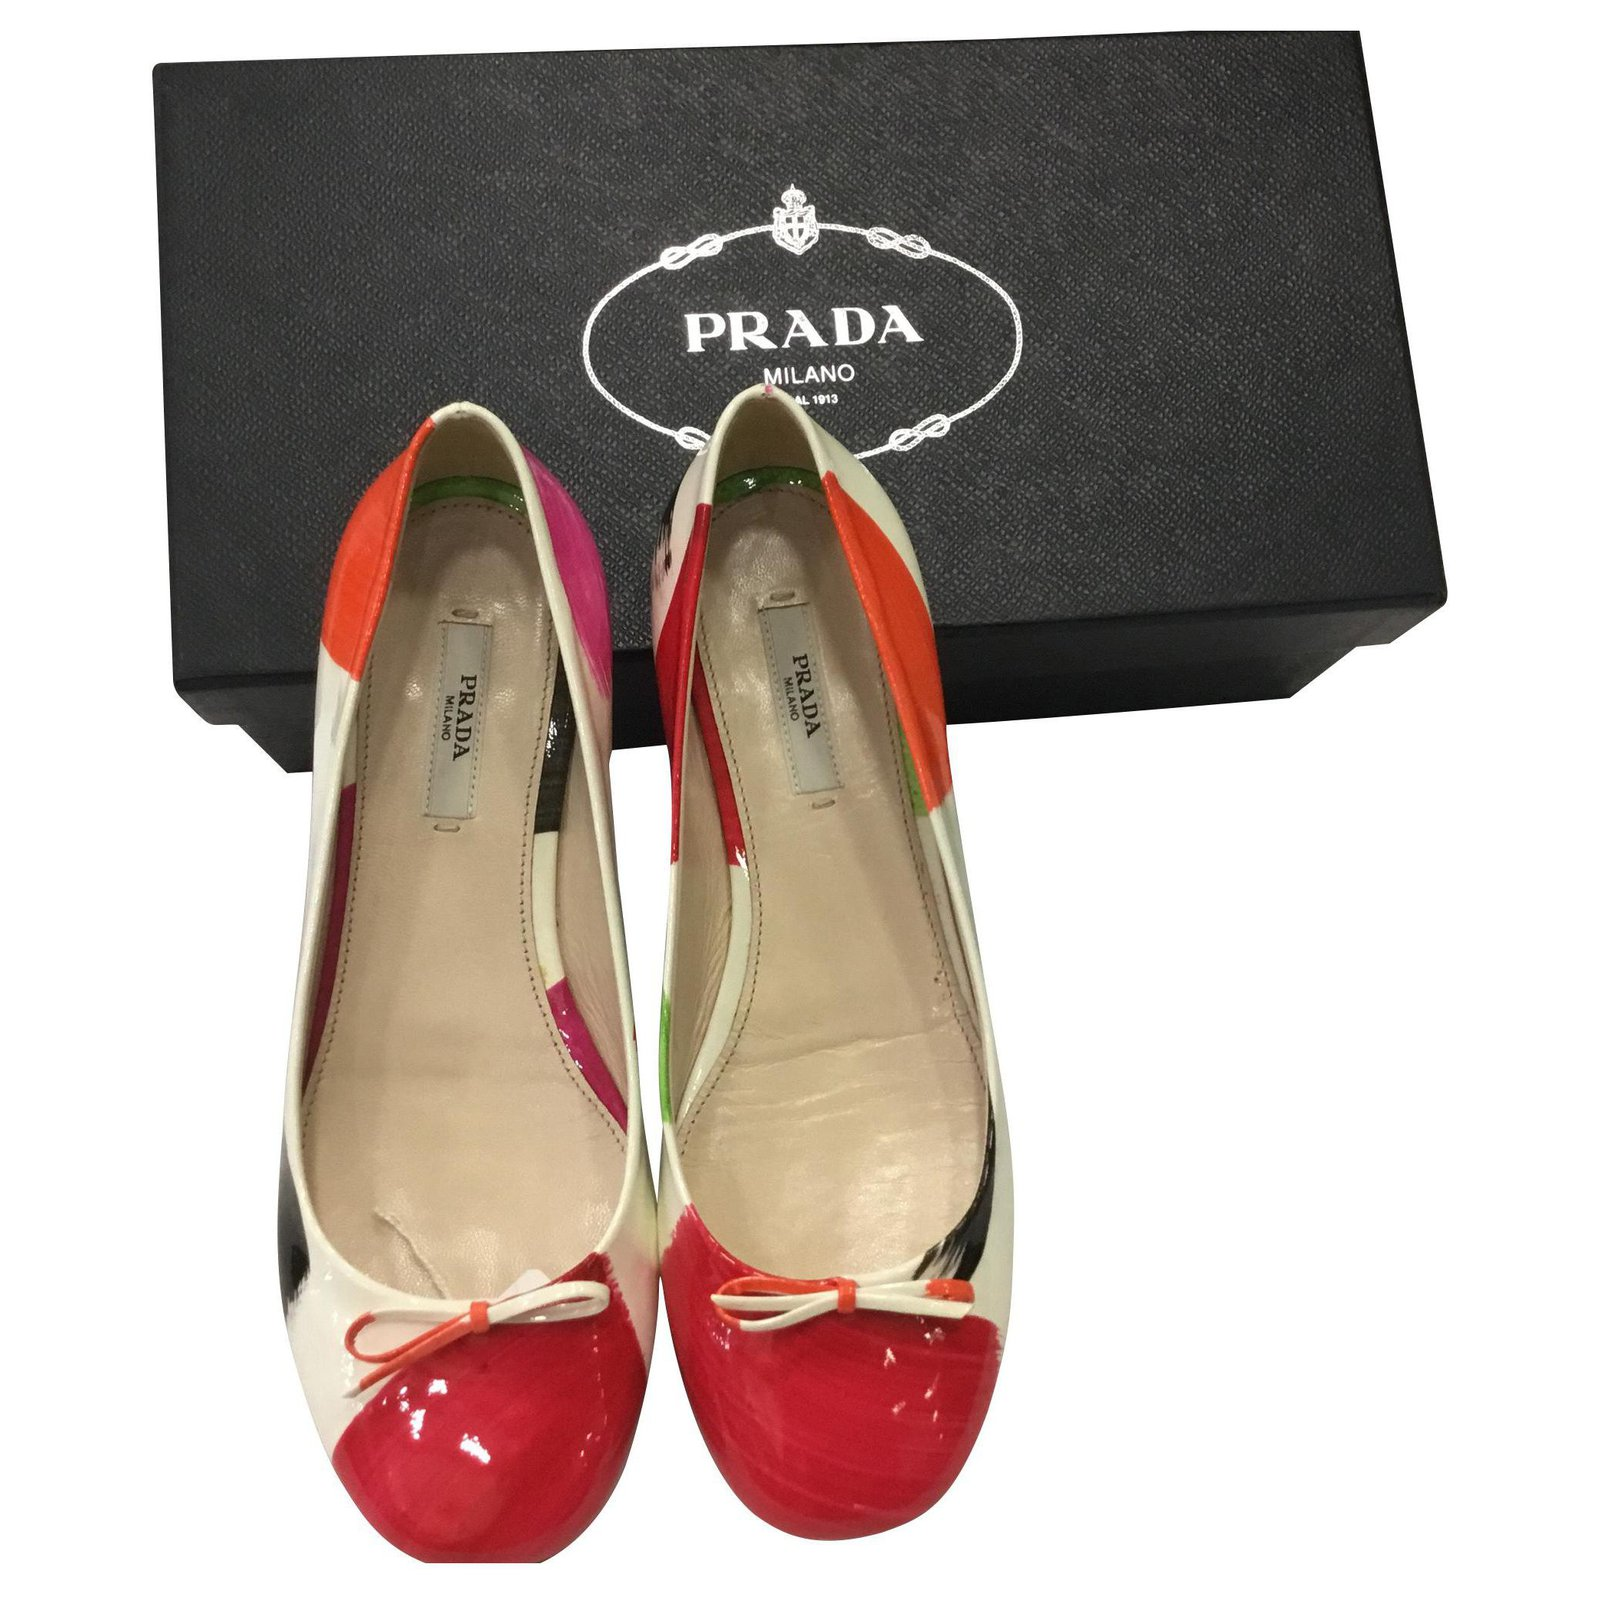 Prada Dancers Ballet Flats Patent Leather Other Ref 147479